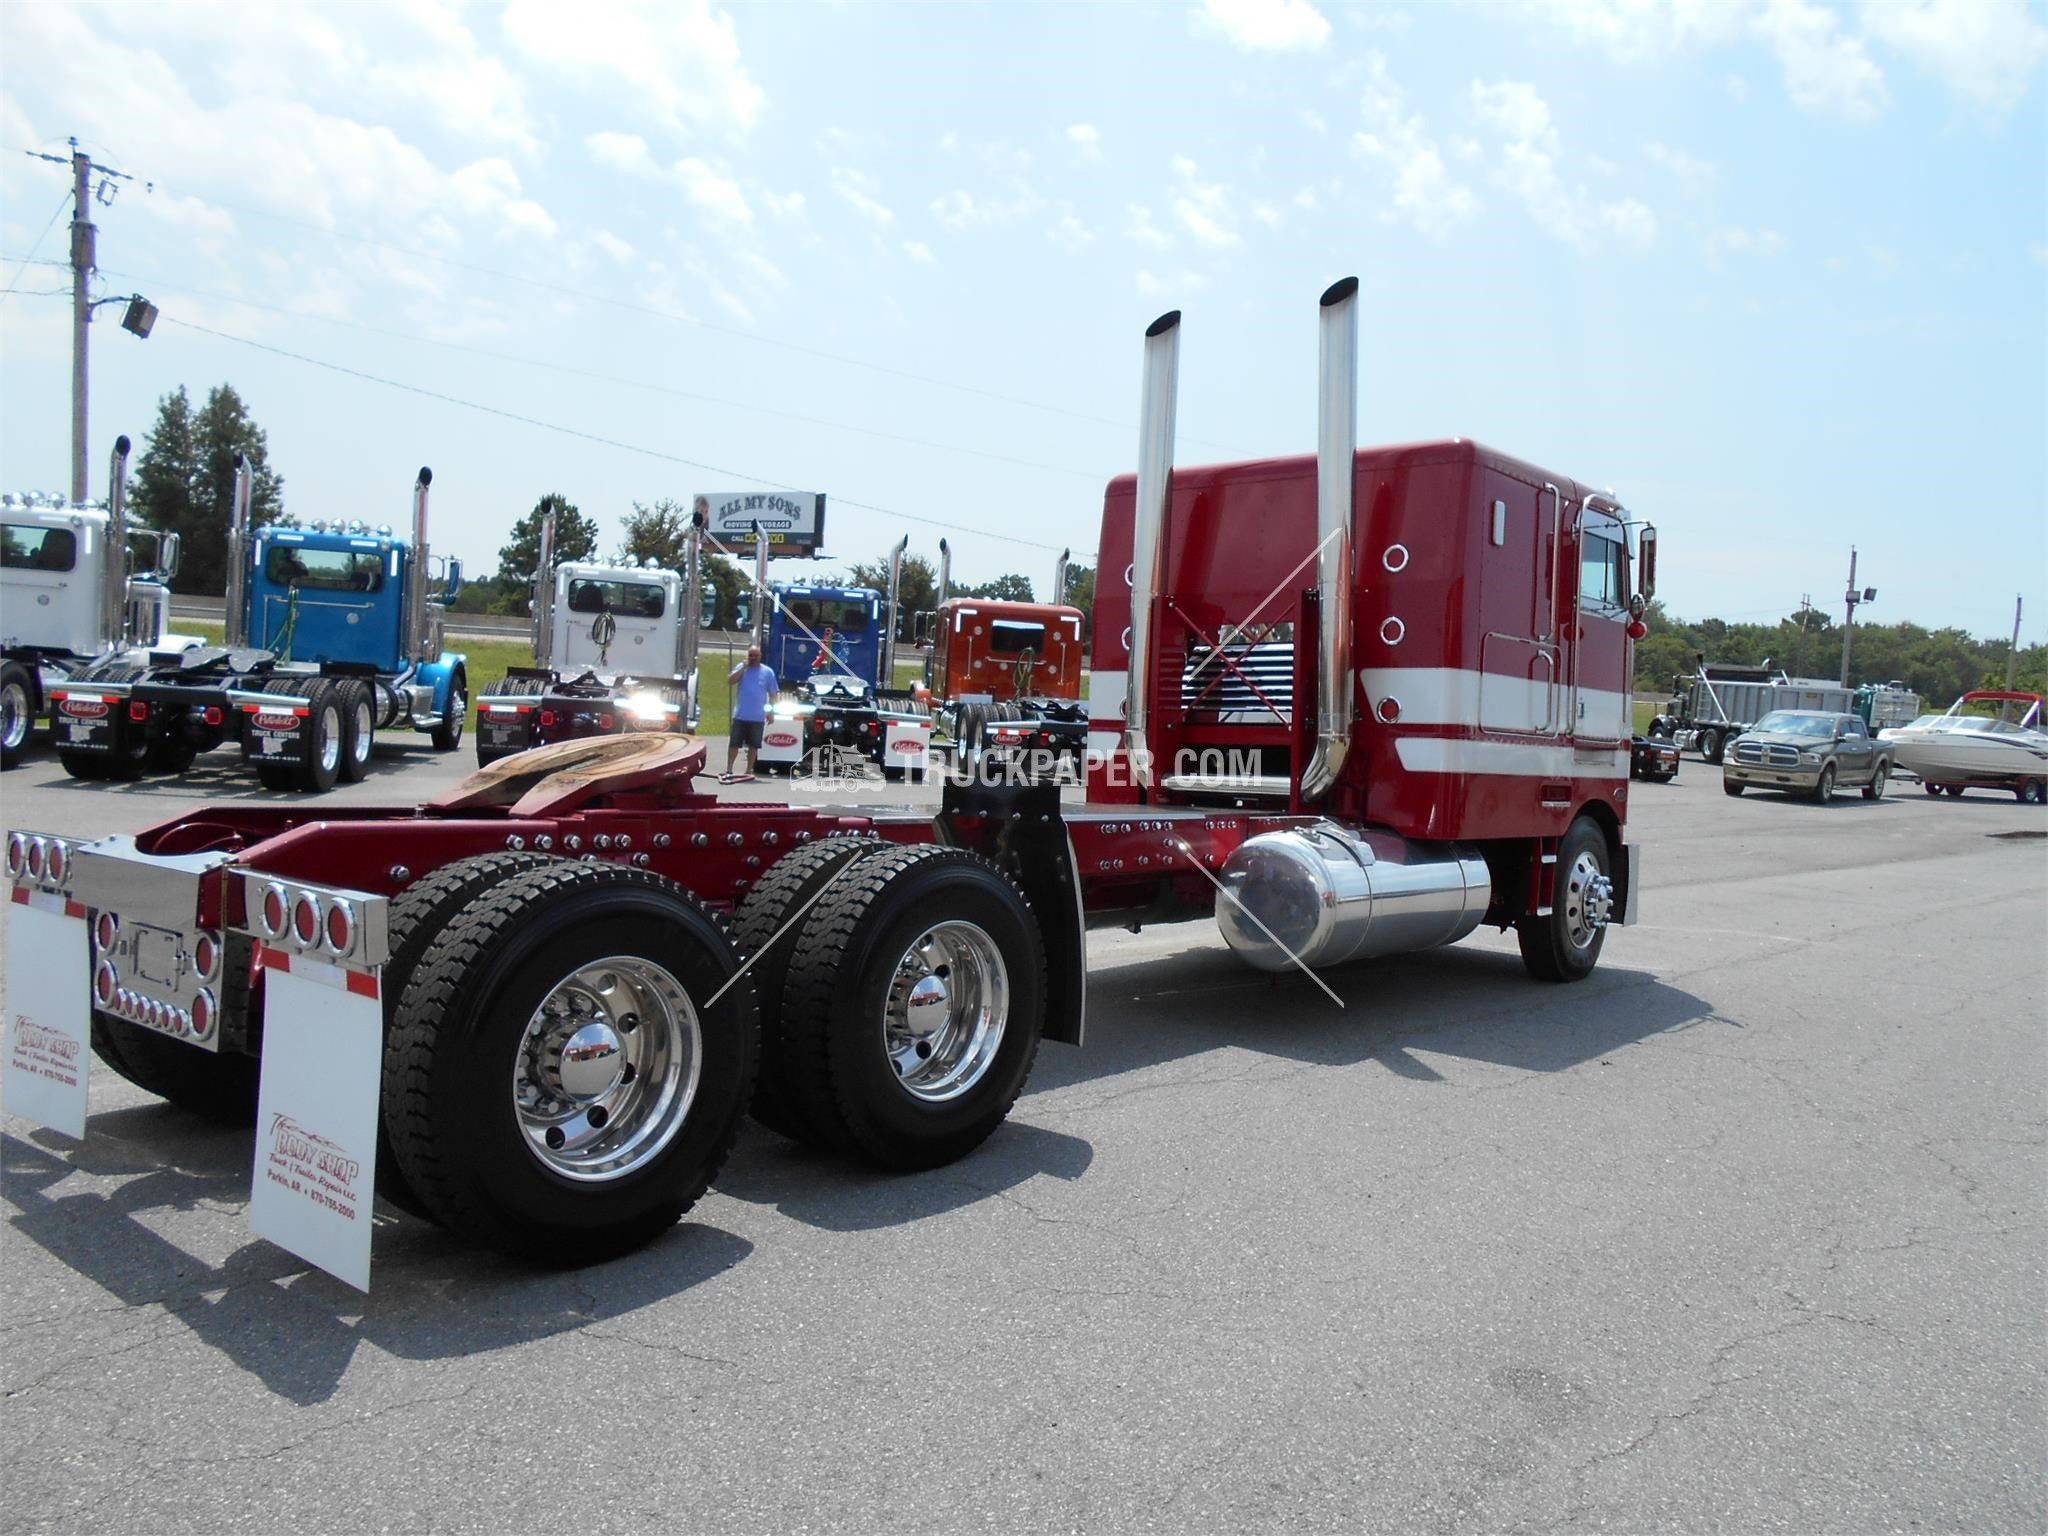 1959 PETERBILT 359 For Sale At Hundreds of